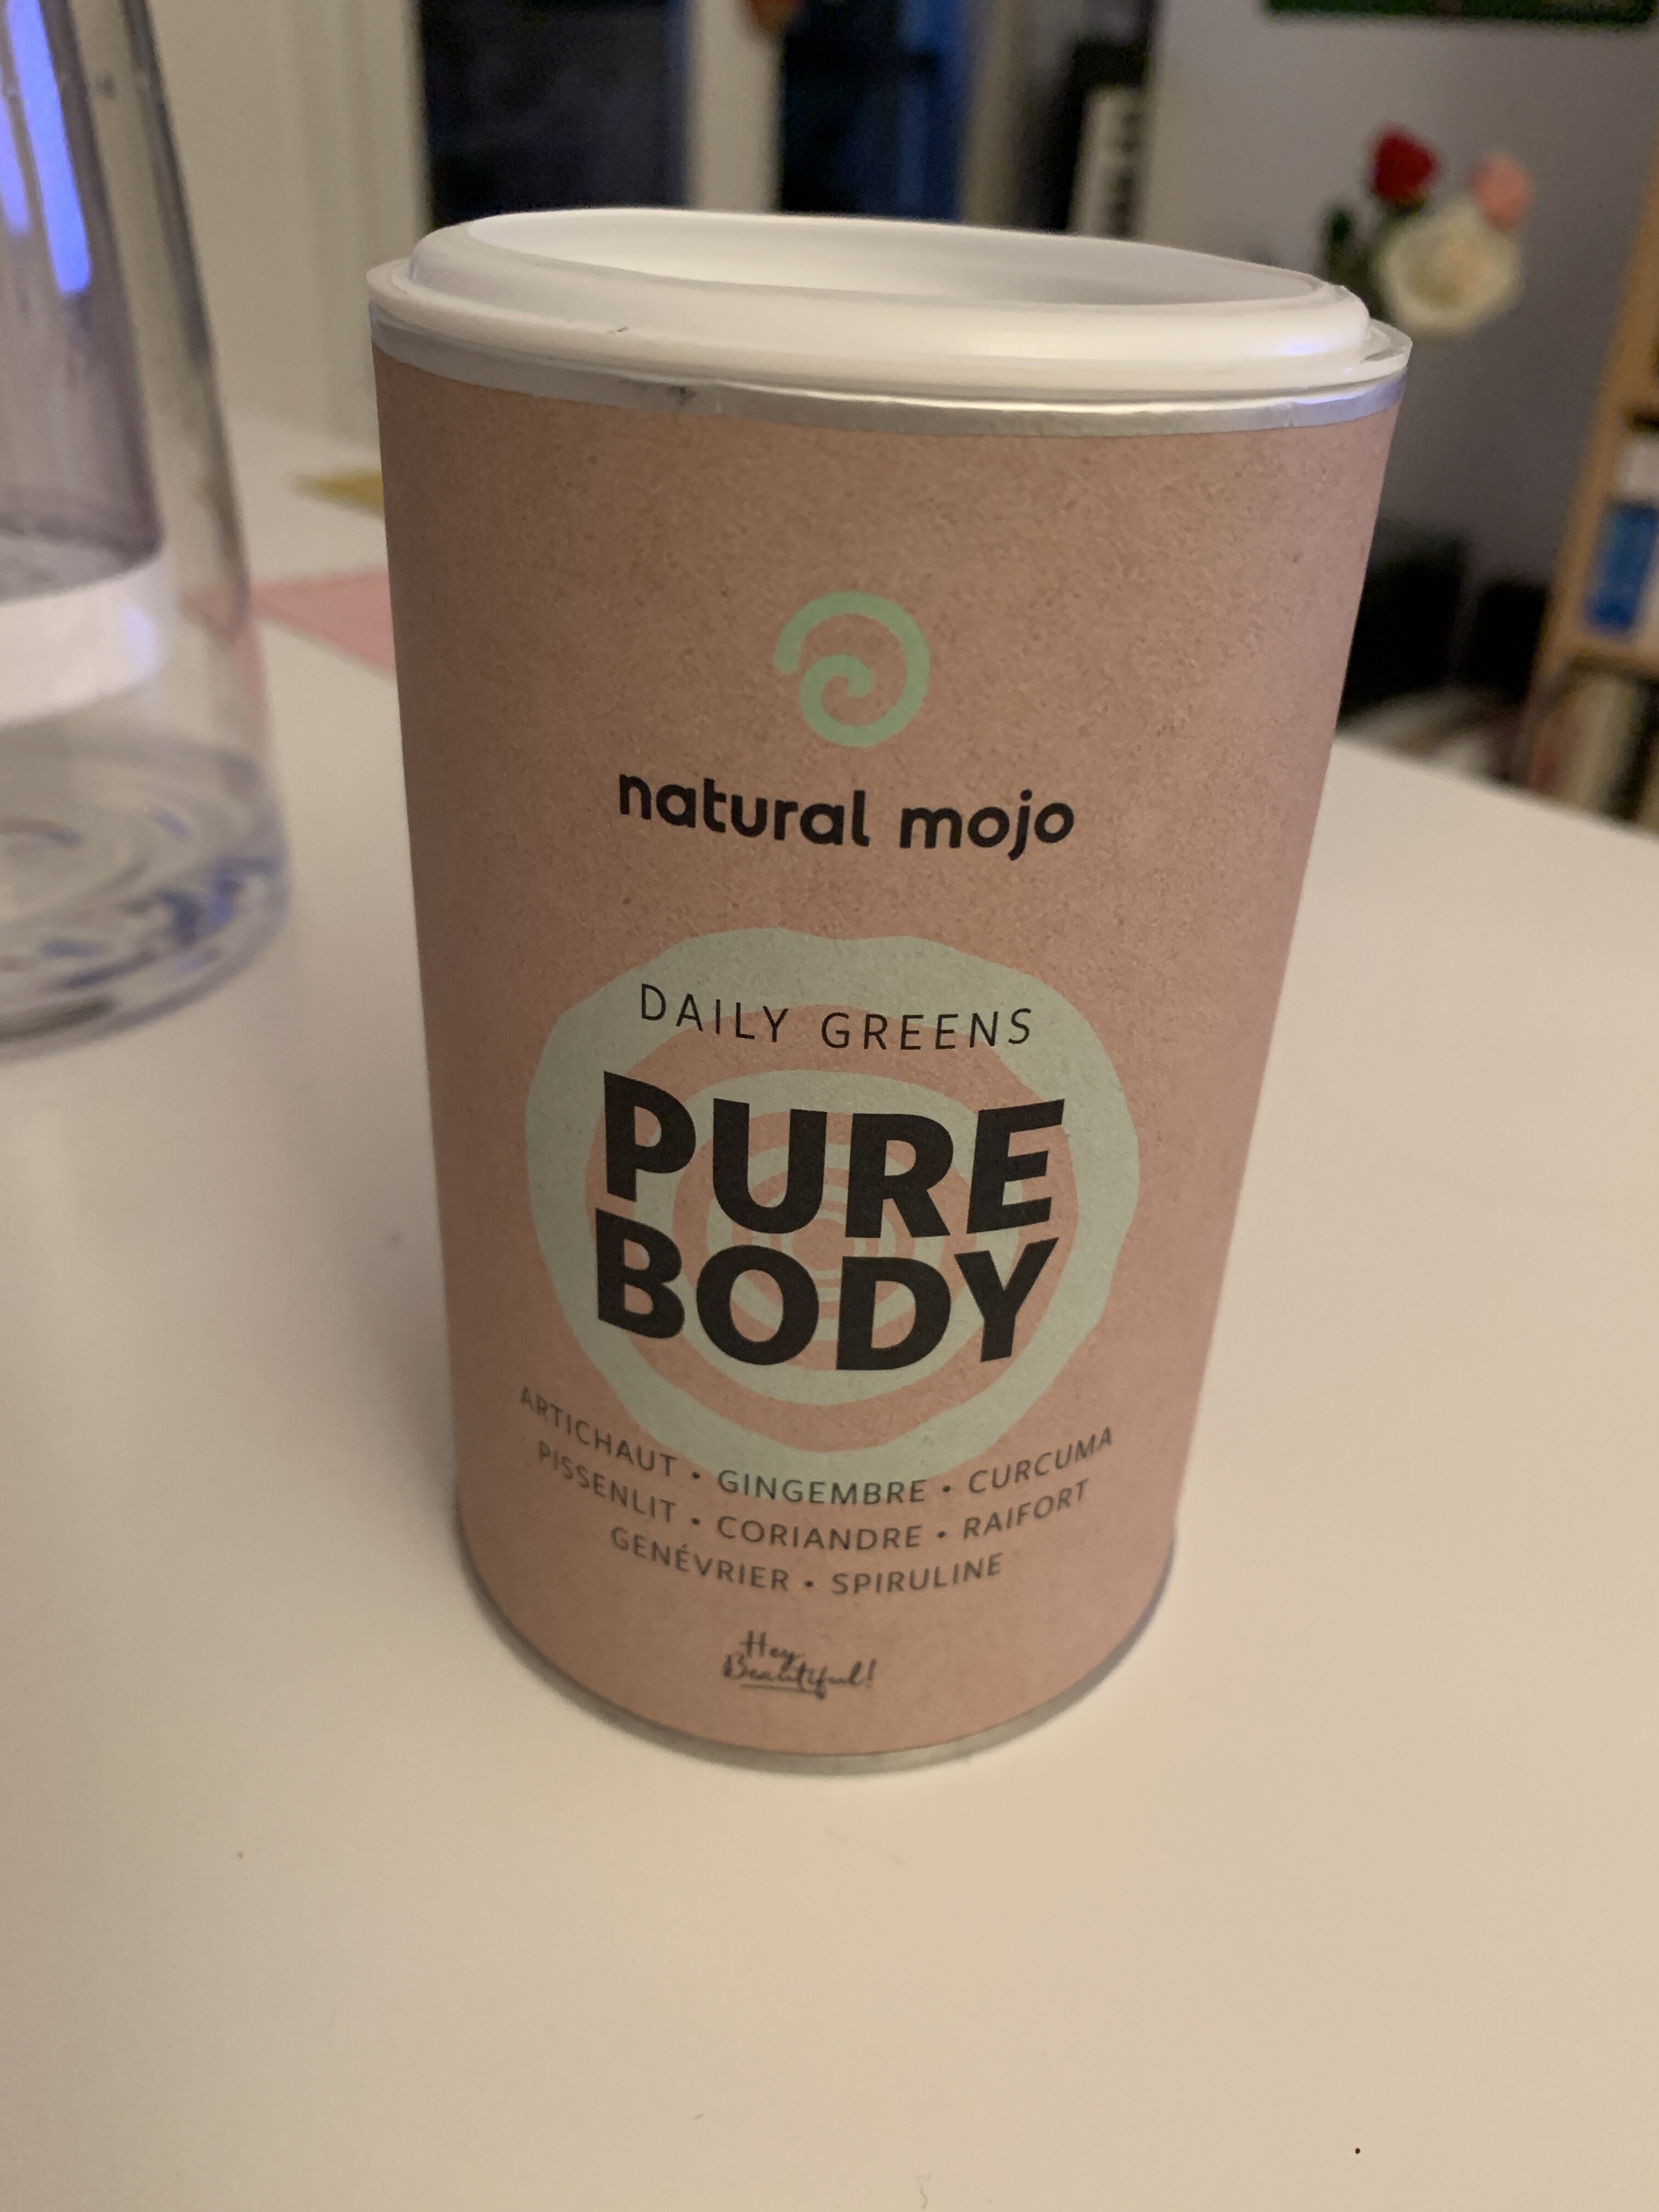 Pure body - Product